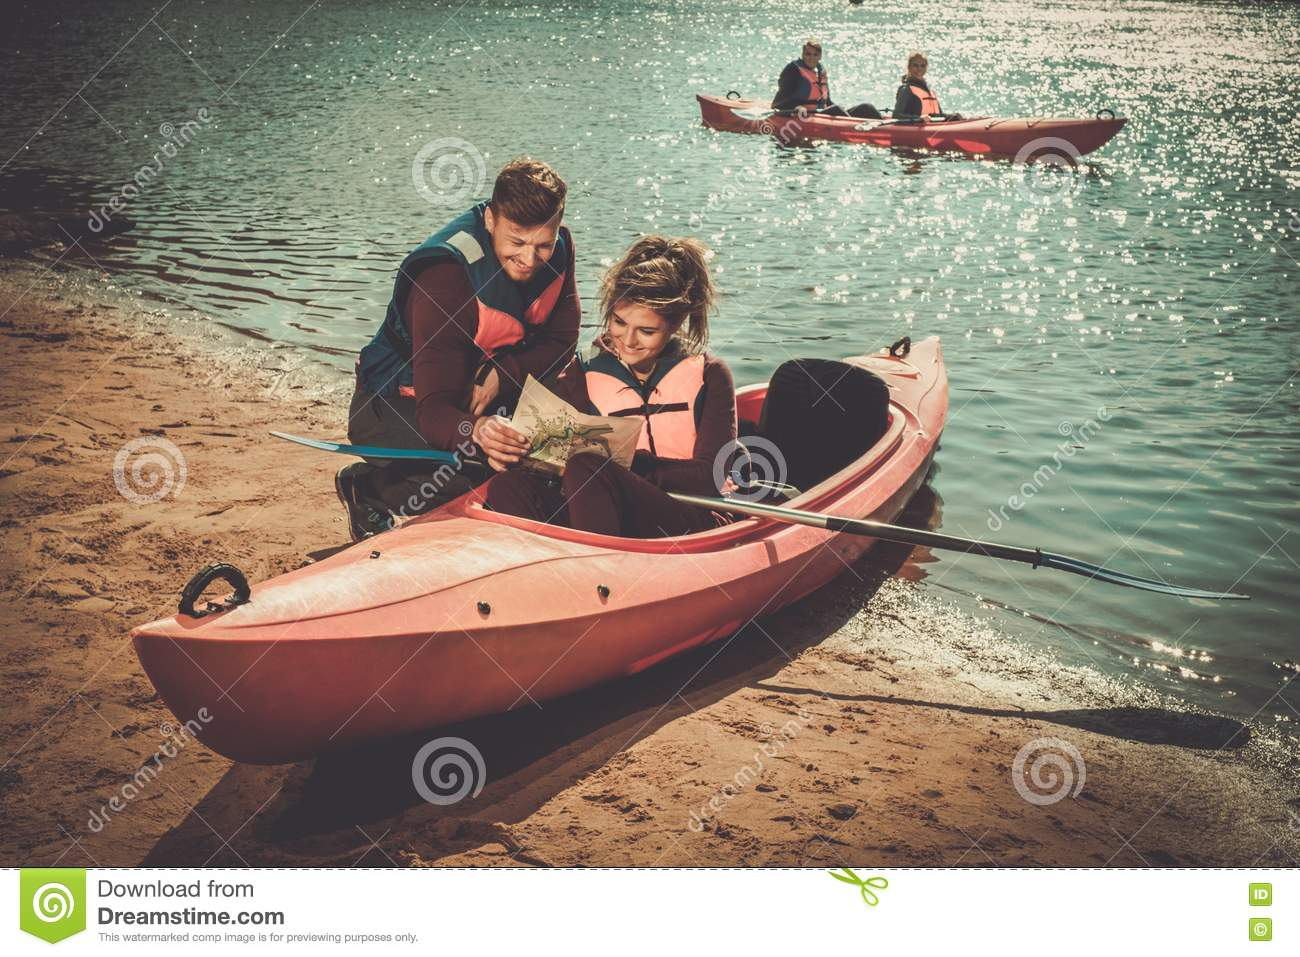 Couple reading a map in kayaks on a beach.